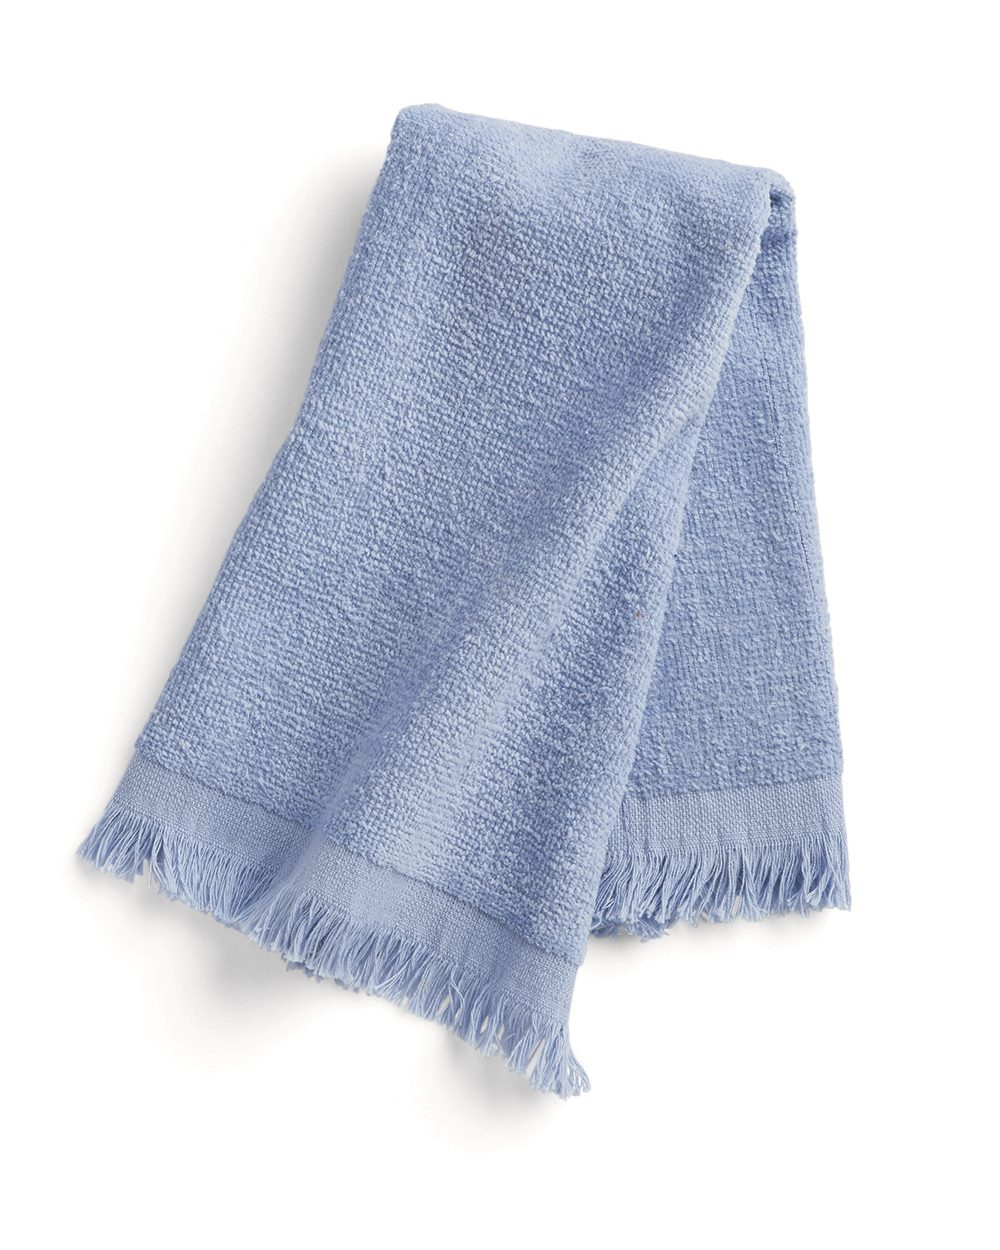 Q-Tees T100 - Fringed Fingertip Towel